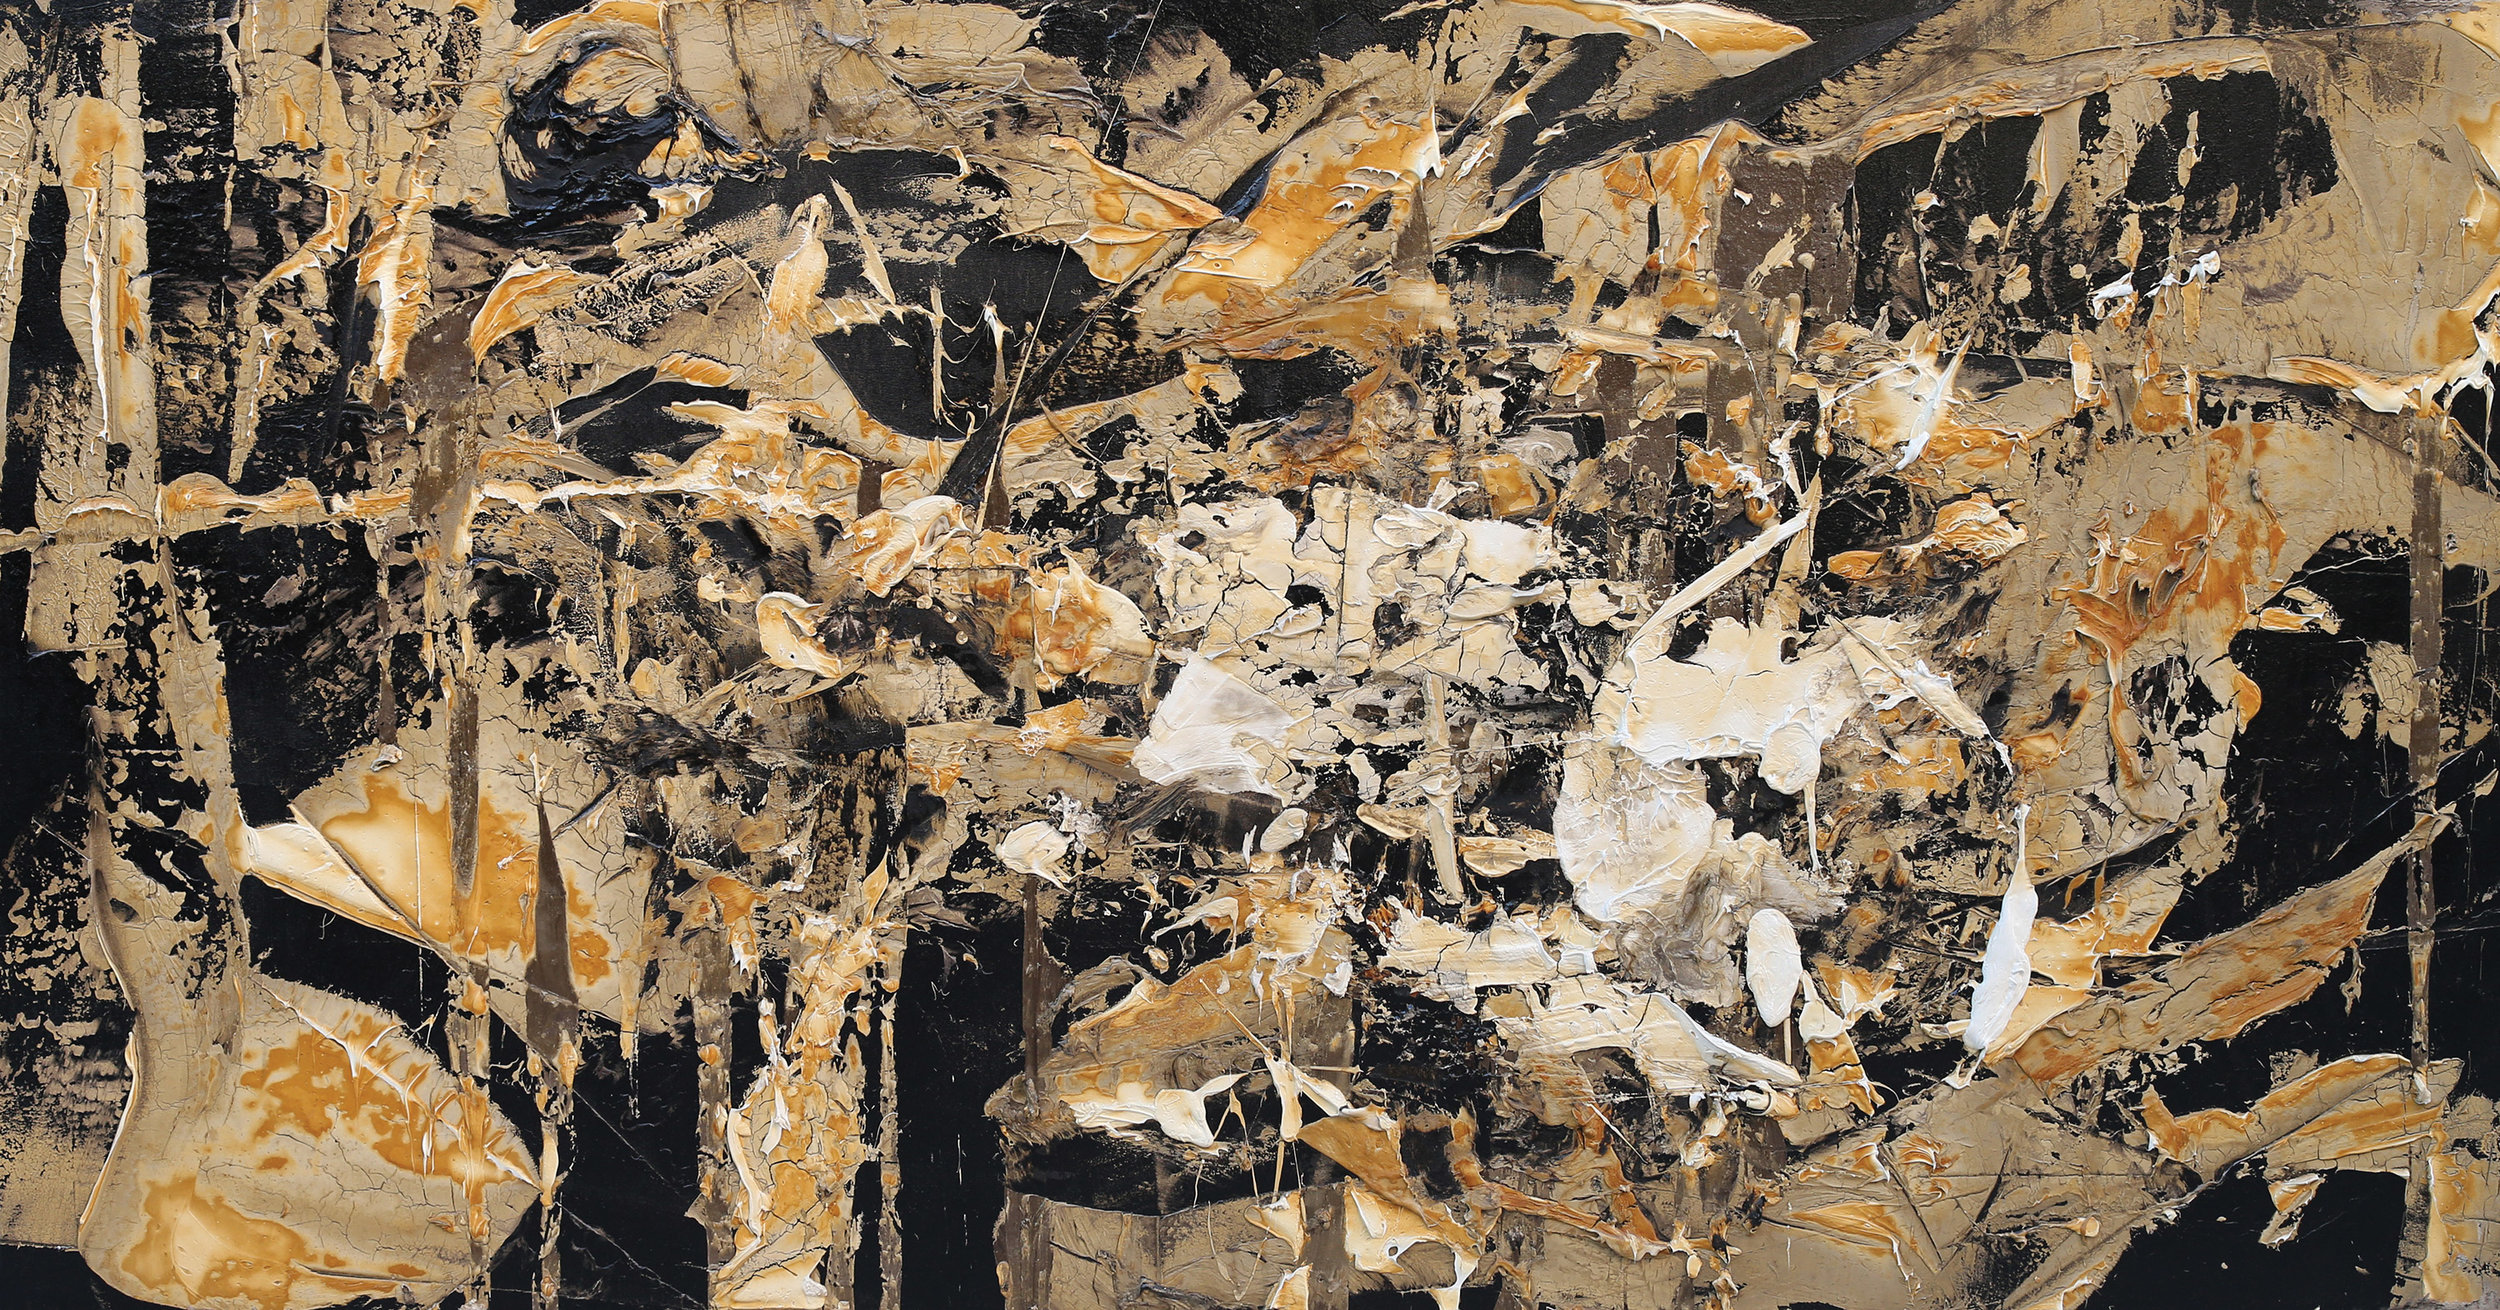 The Innocent Perception , 2013  oil and tar on canvas  55 x 105 inches